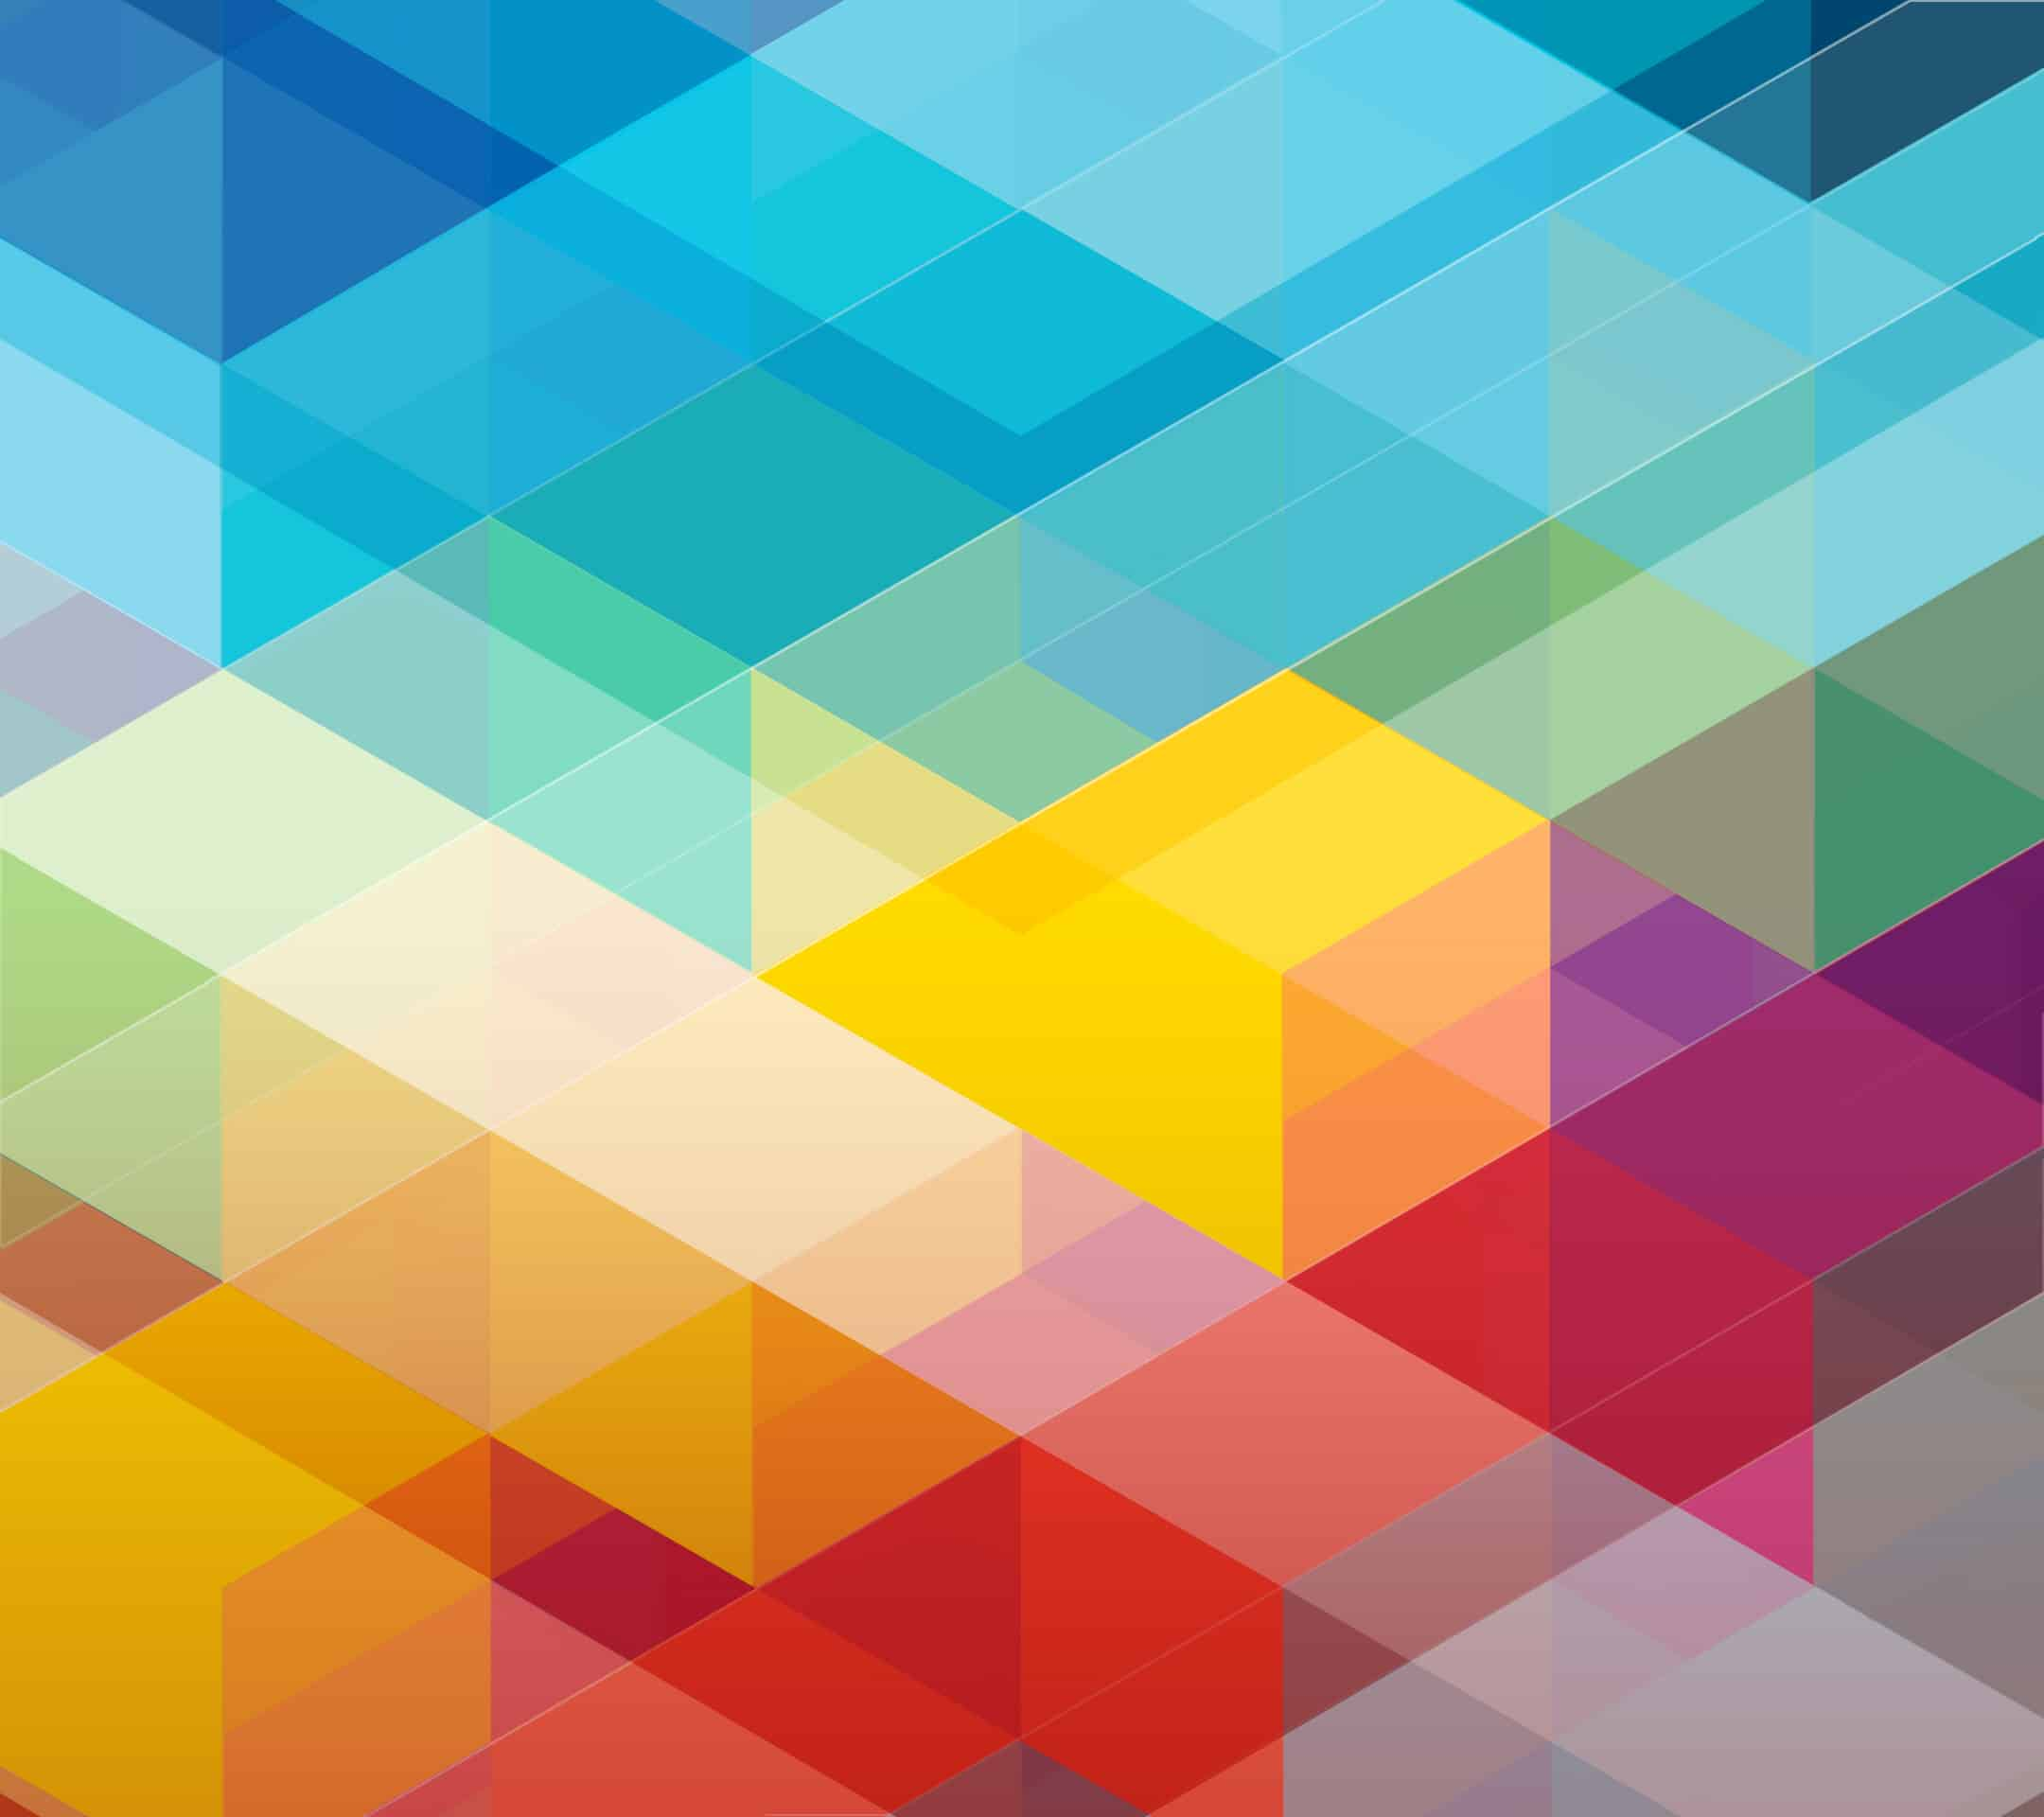 Official Galaxy S5 Xperia Z2 And LG G Pro 2 Wallpapers Available